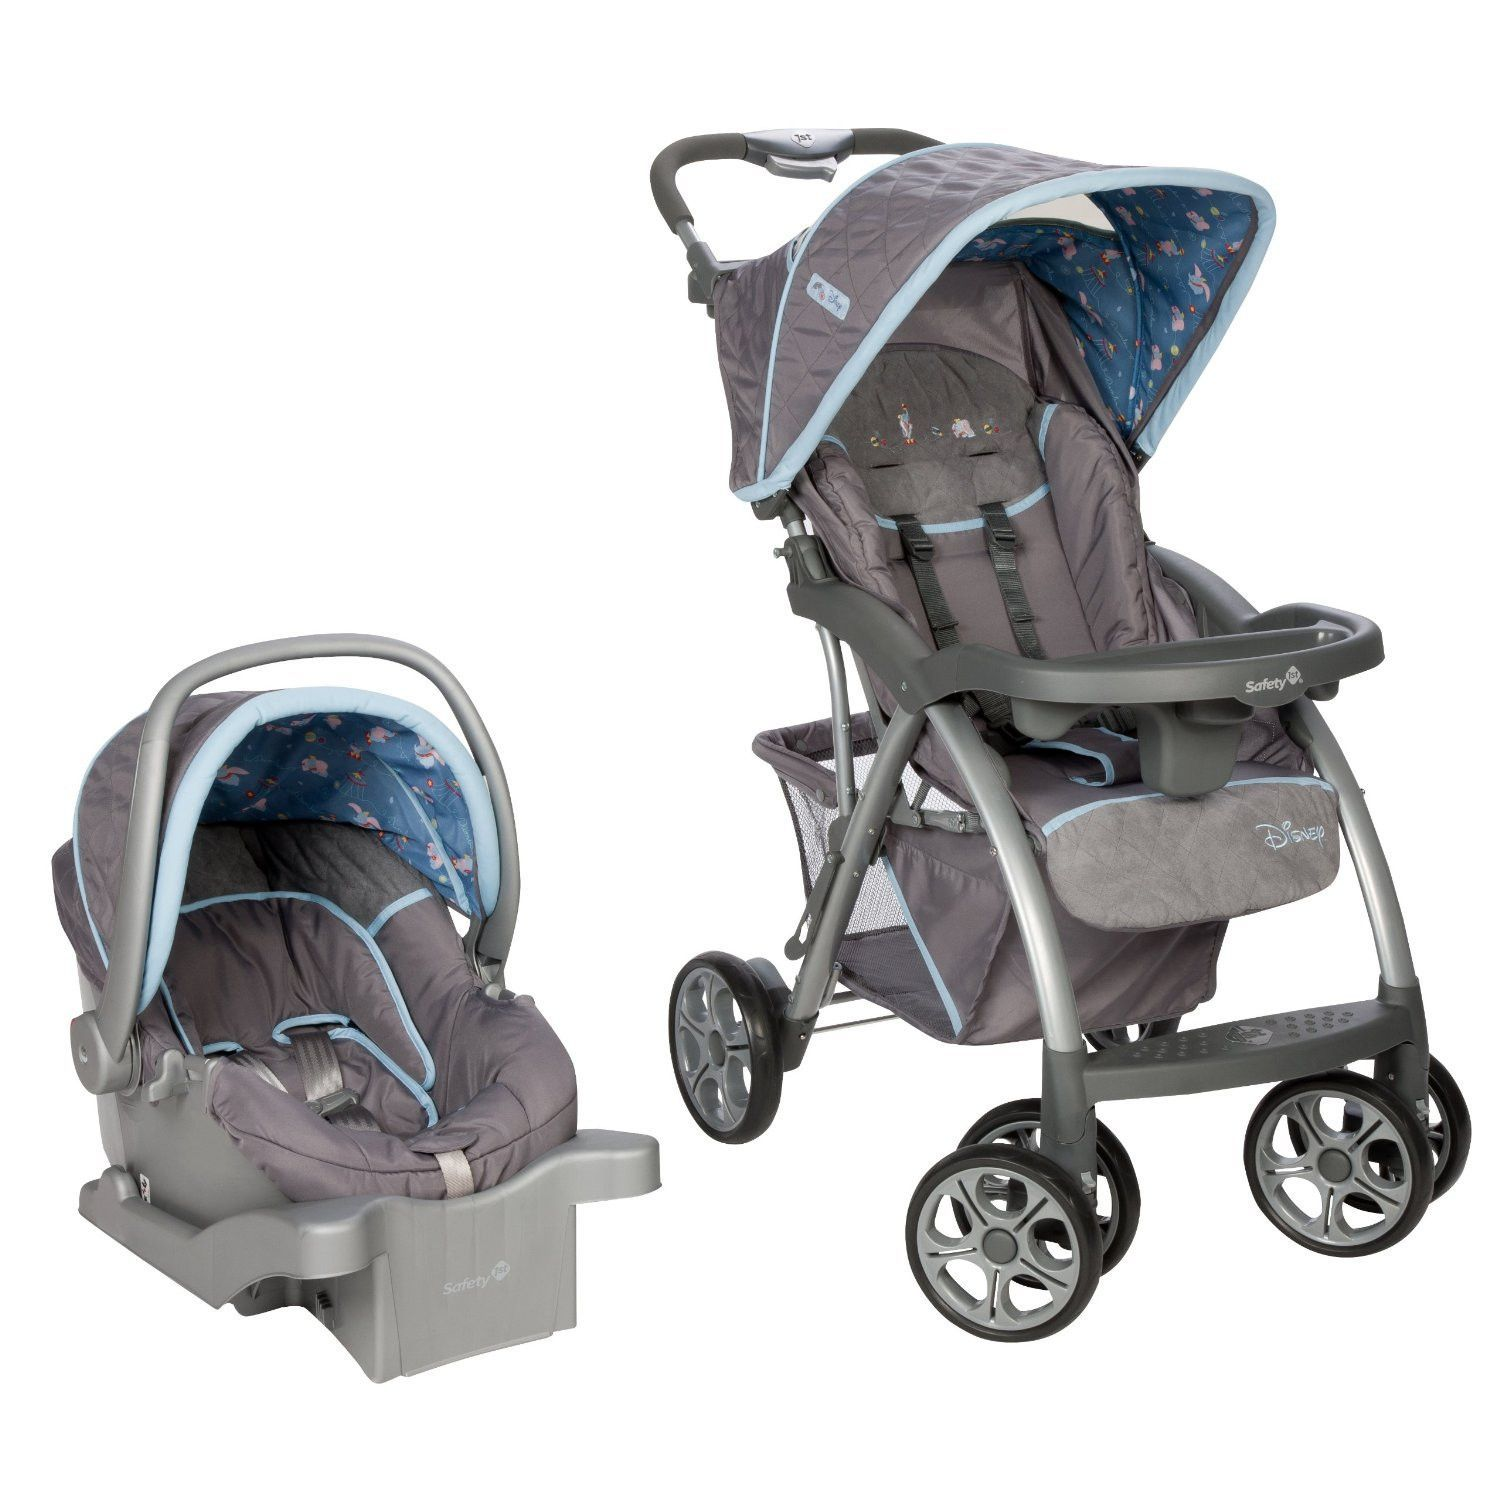 Disney Baby Saunter Luxe Travel System, Dumbo Car seats